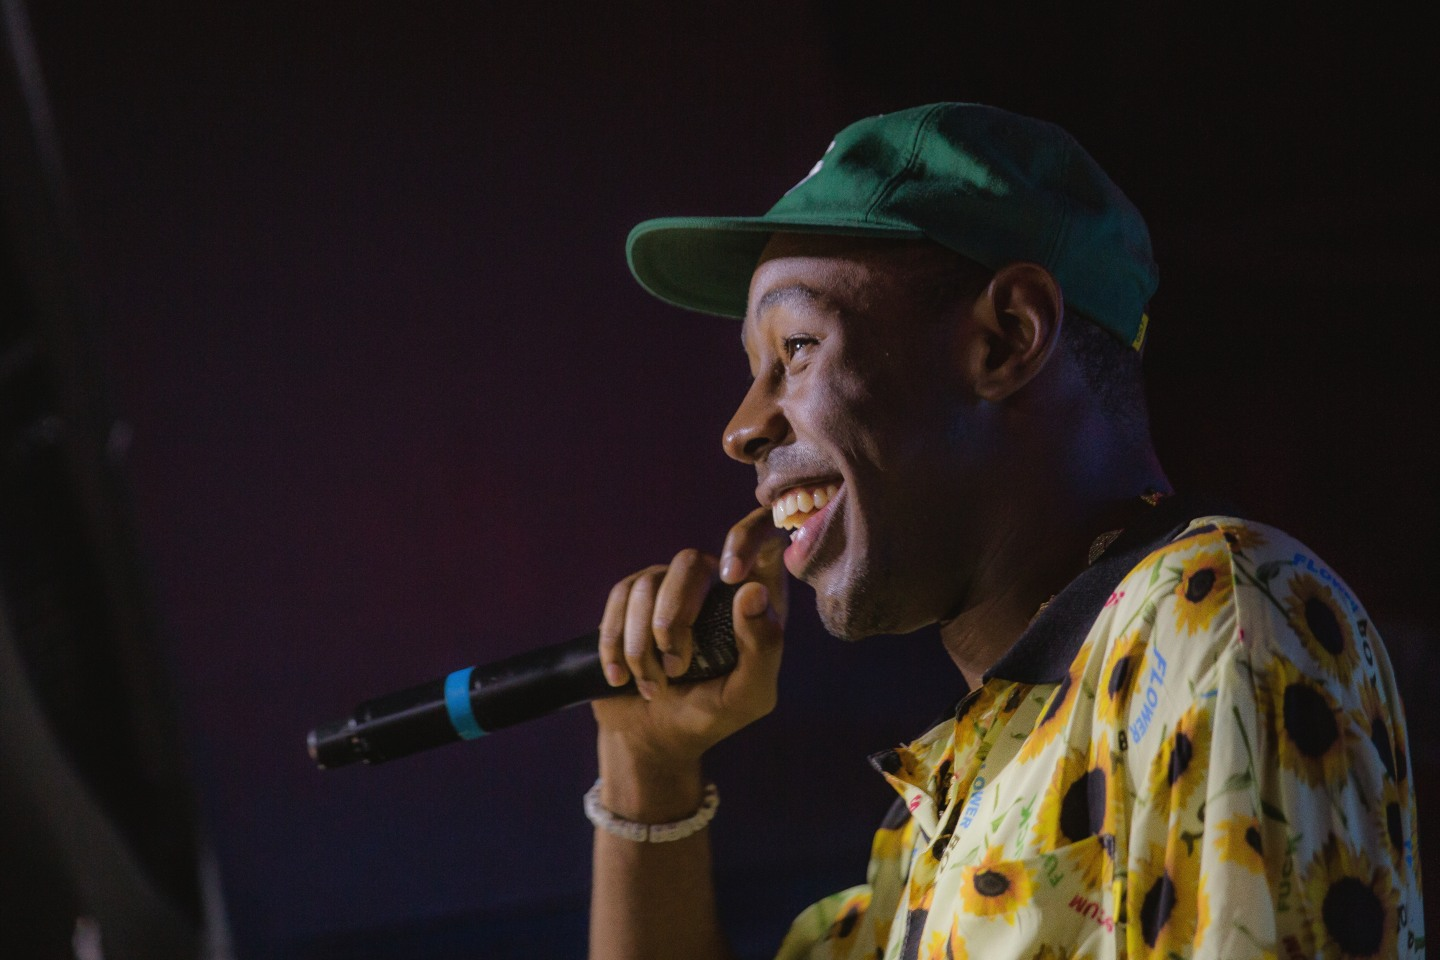 With <i>Flower Boy</i>, Tyler, The Creator Has Built A Pastel Kingdom To Flourish In